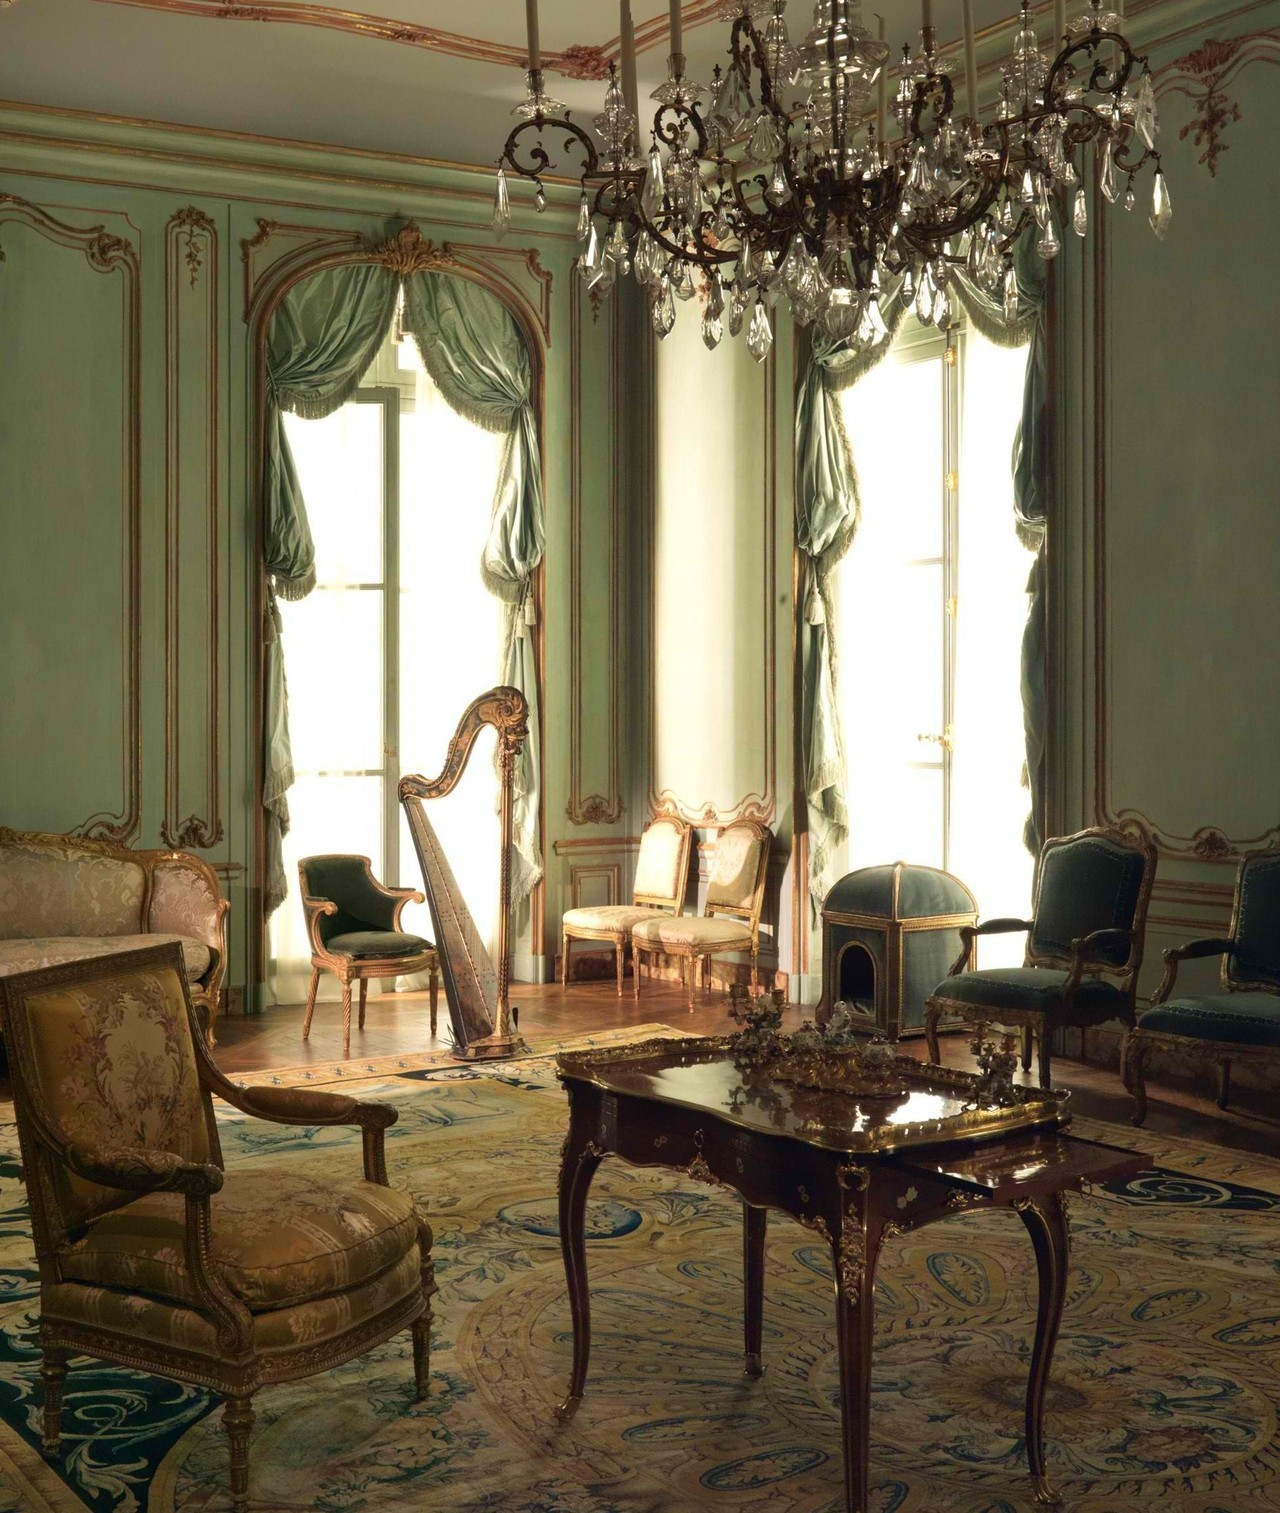 The  Palais Paar  room (Wrightsman Galleries  , the Metropolitan Museum of Art)  A testimony to the widespread influence of French eighteenth-century styles is the  Palais Paar paneling, created in about 1765–72  in Vienna. Displaying triple moldings enriched with foliate and shell motifs and flowers, the  paneling is executed in a French late Rococo style. This large, formal room features one of the famous Savonnerie carpets created during the late seventeenth century for the  Louvre Palace. Among the furnishings is  one of the famous  Savonnerie carpets created during the late seventeenth century for the  Louvre Palace, gilt bronze, Sèvres porcelain, silver, and gold boxes, a wall clock in gilt bronze by Charles Cressent, as well as seat furniture made for the gaming rooms of two French royal palaces.